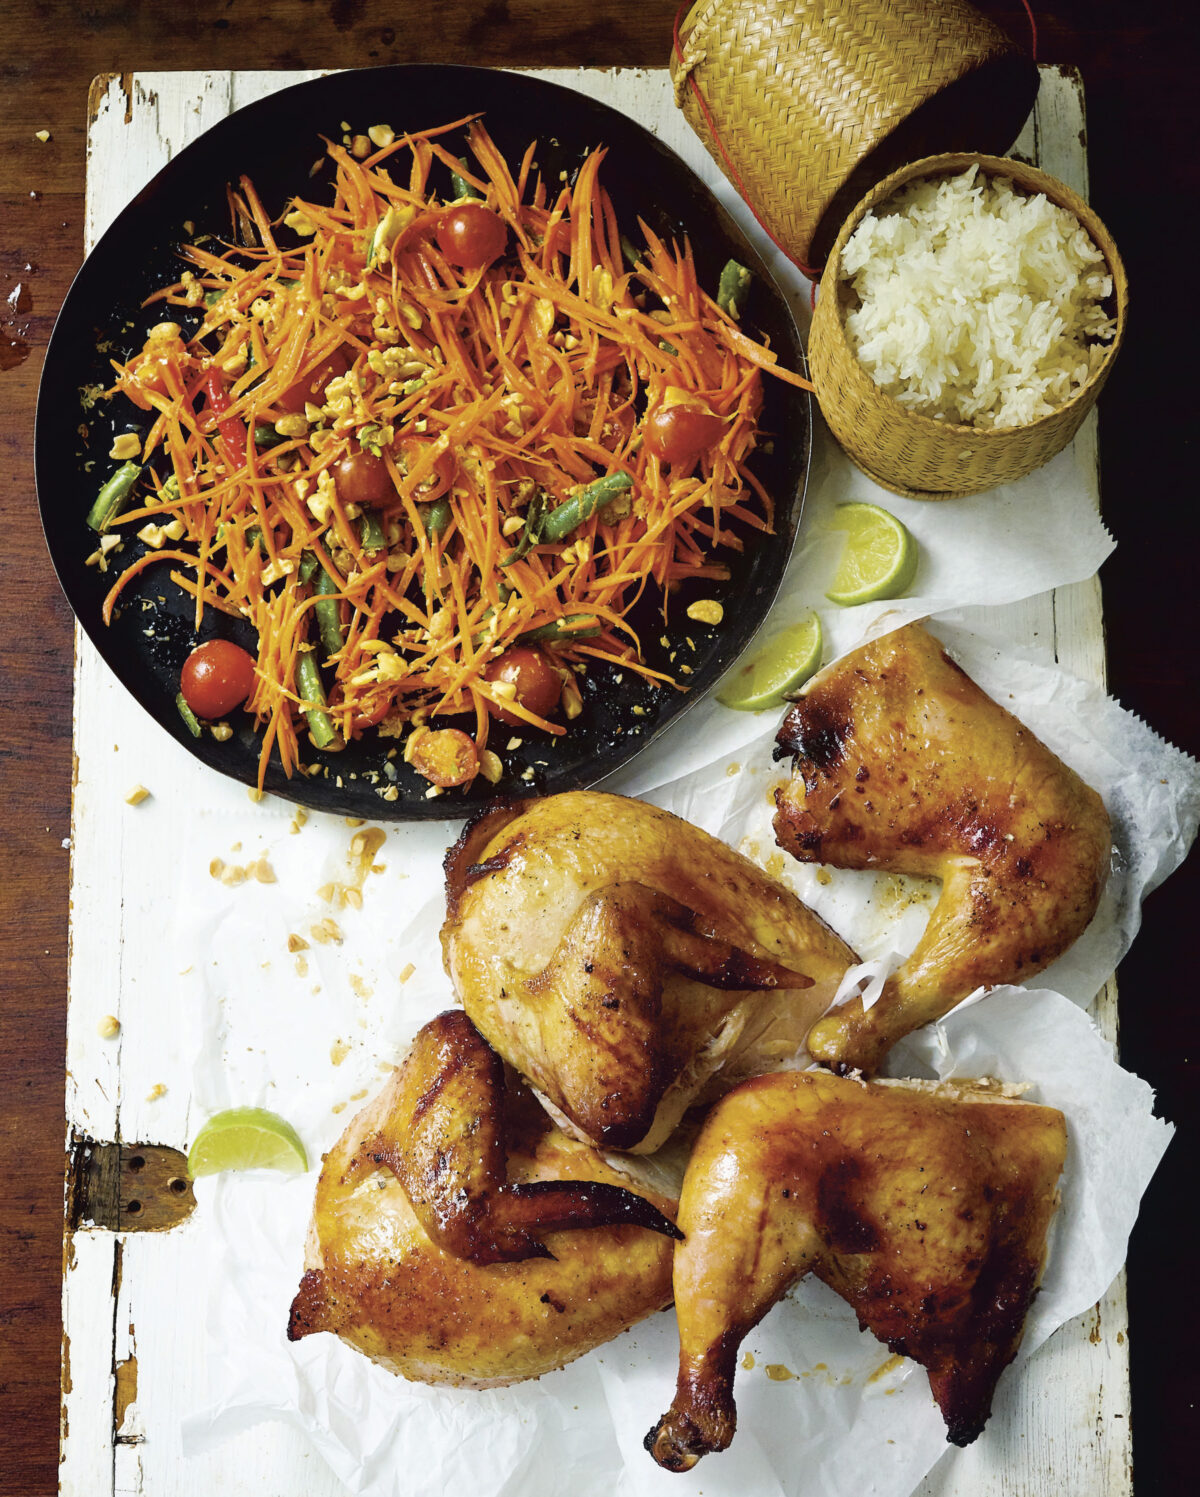 Grilled Chicken and Spicy Carrot Salad